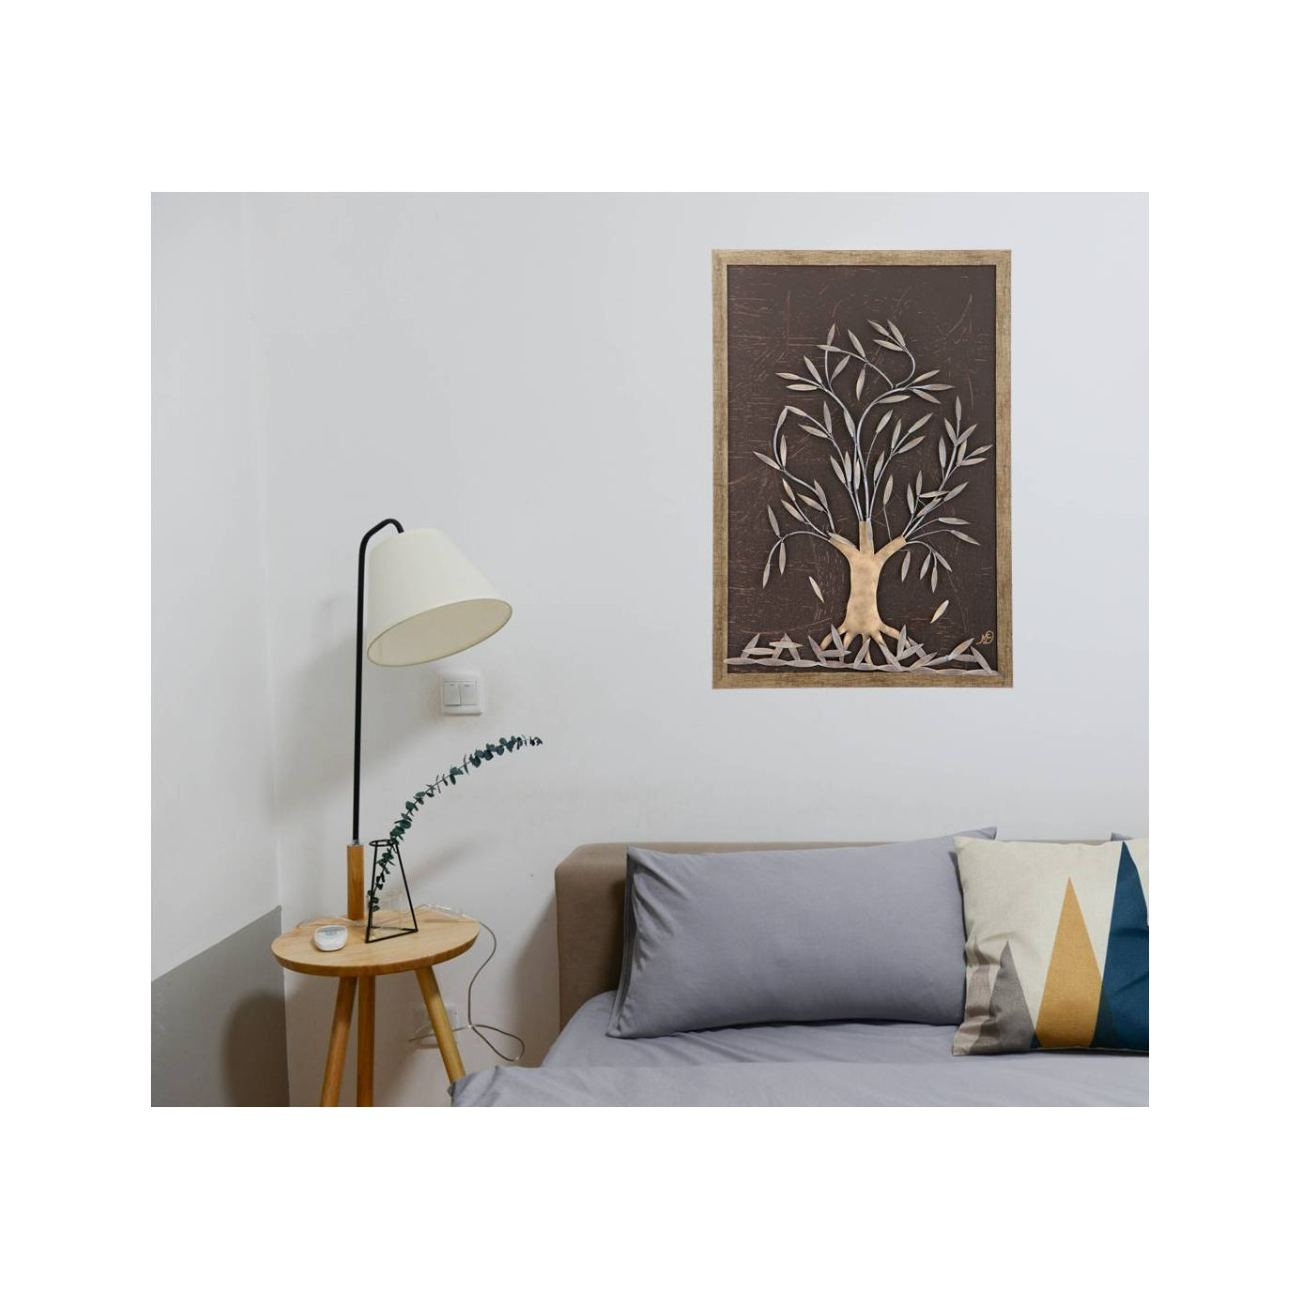 "Latest Olive Tree, 3D Handmade Wood & Metal Wall Art Framed Decor, 25"" (64Cm) Inside Olive/gray Metal Wall Decor (View 7 of 20)"